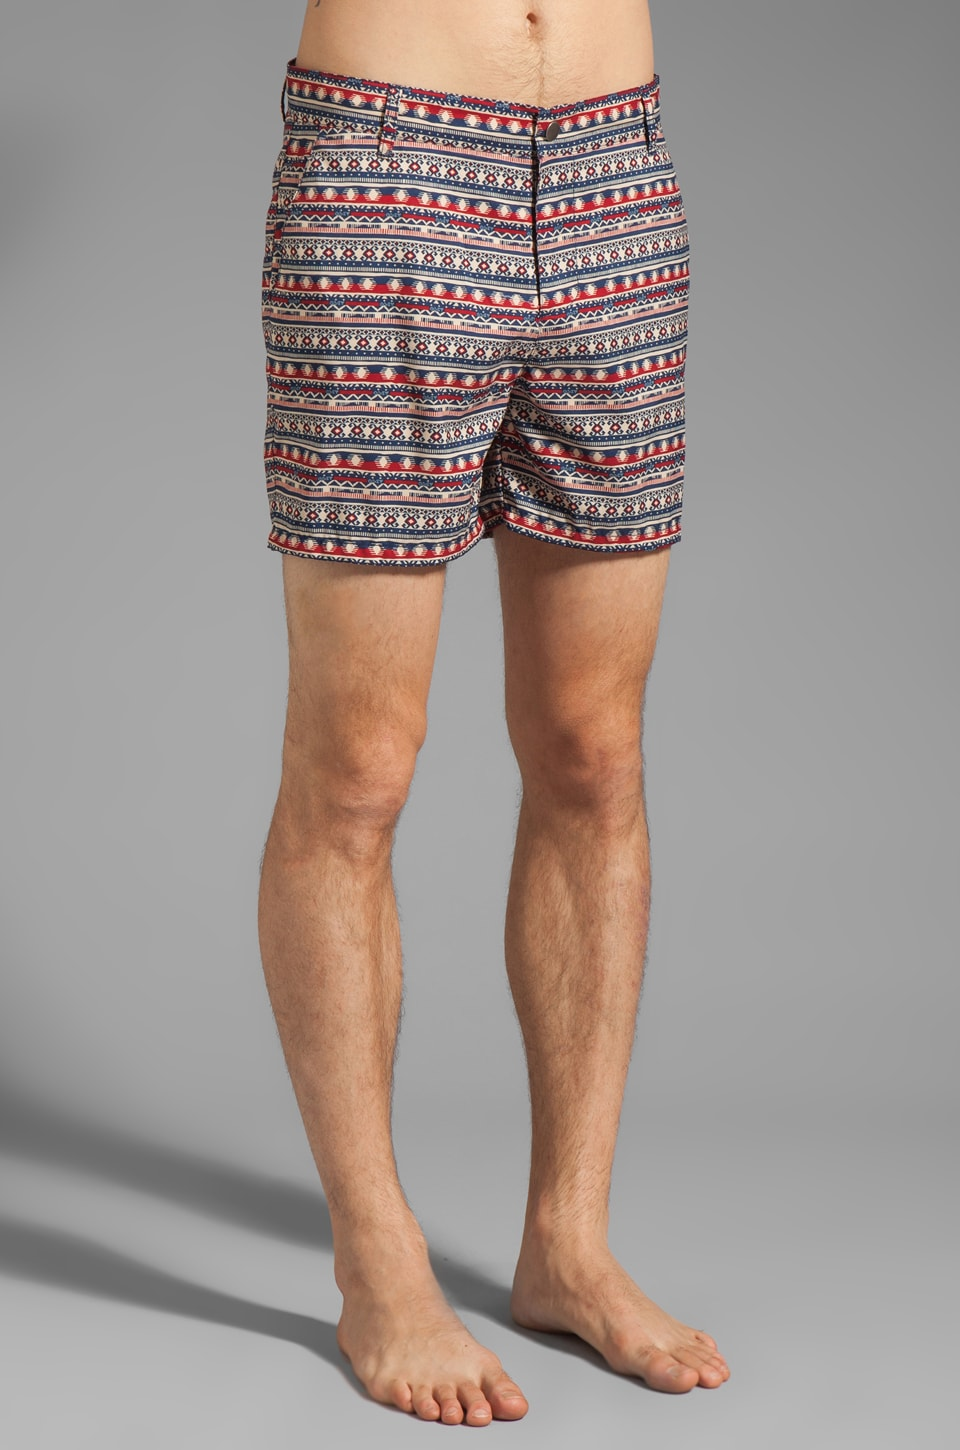 Obey Marrakesh Boardshort in Tan